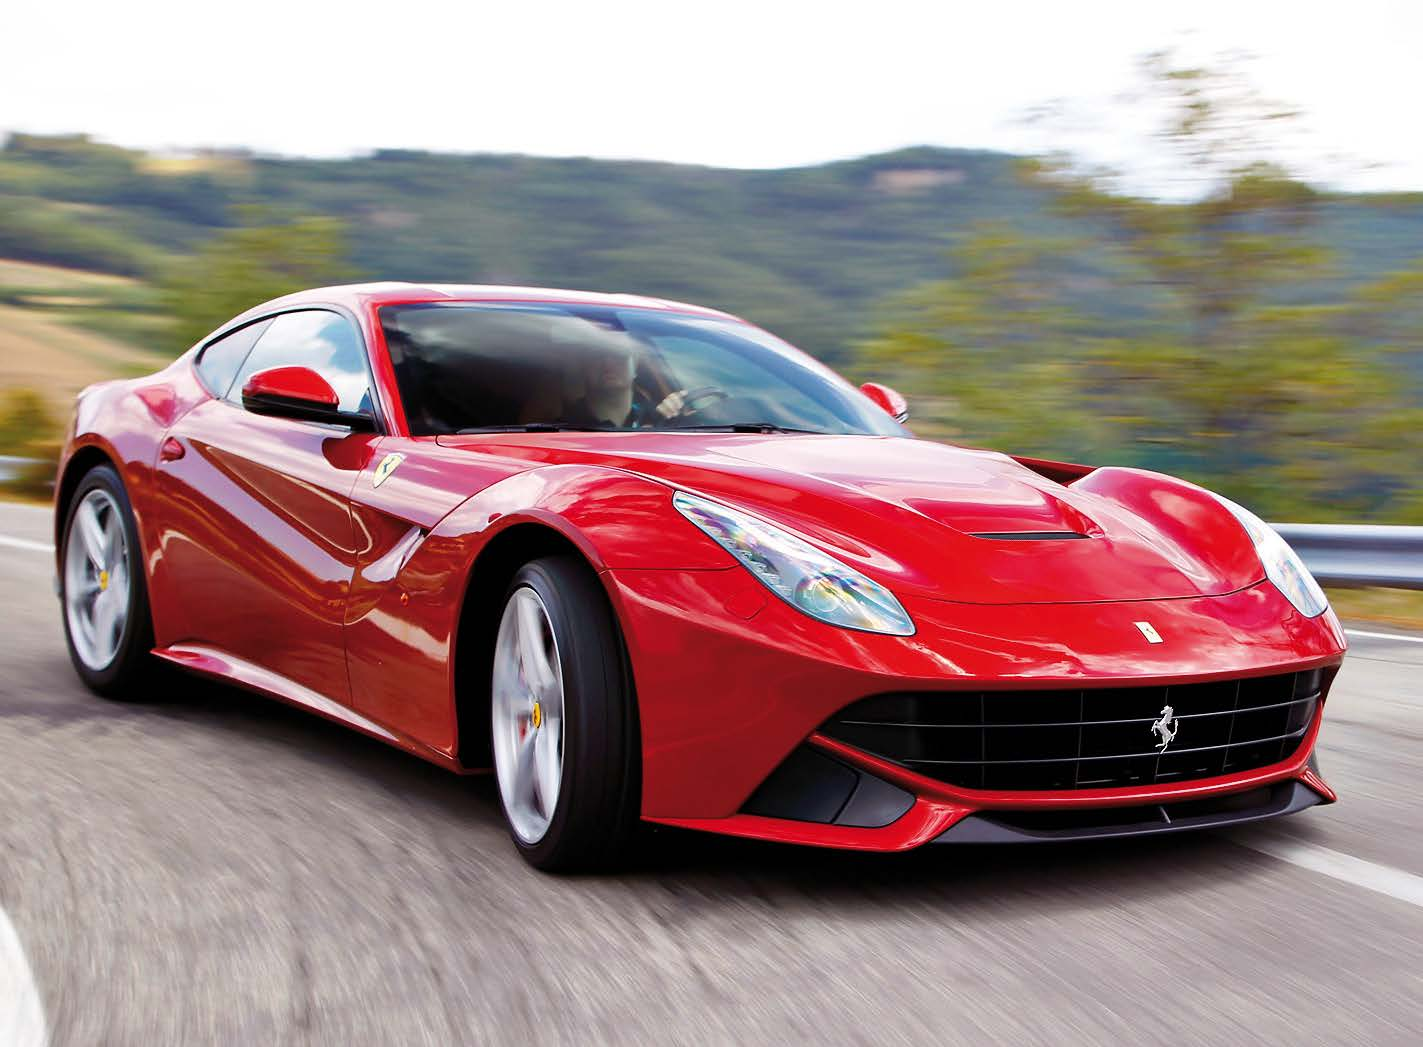 Owner of a dream - Ferrari meeting September 16th to 18th